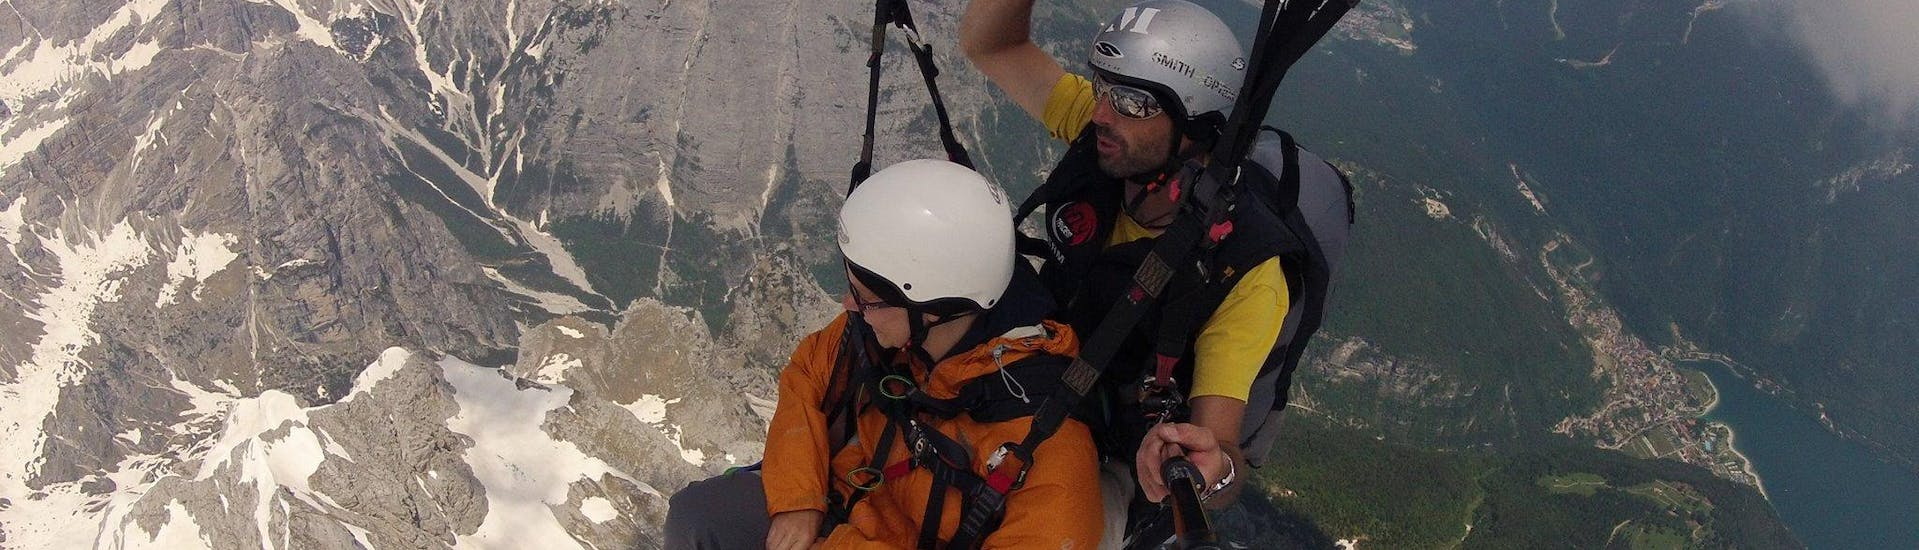 tandem-paragliding-in-molveno-thermic-ifly-tandem-hero